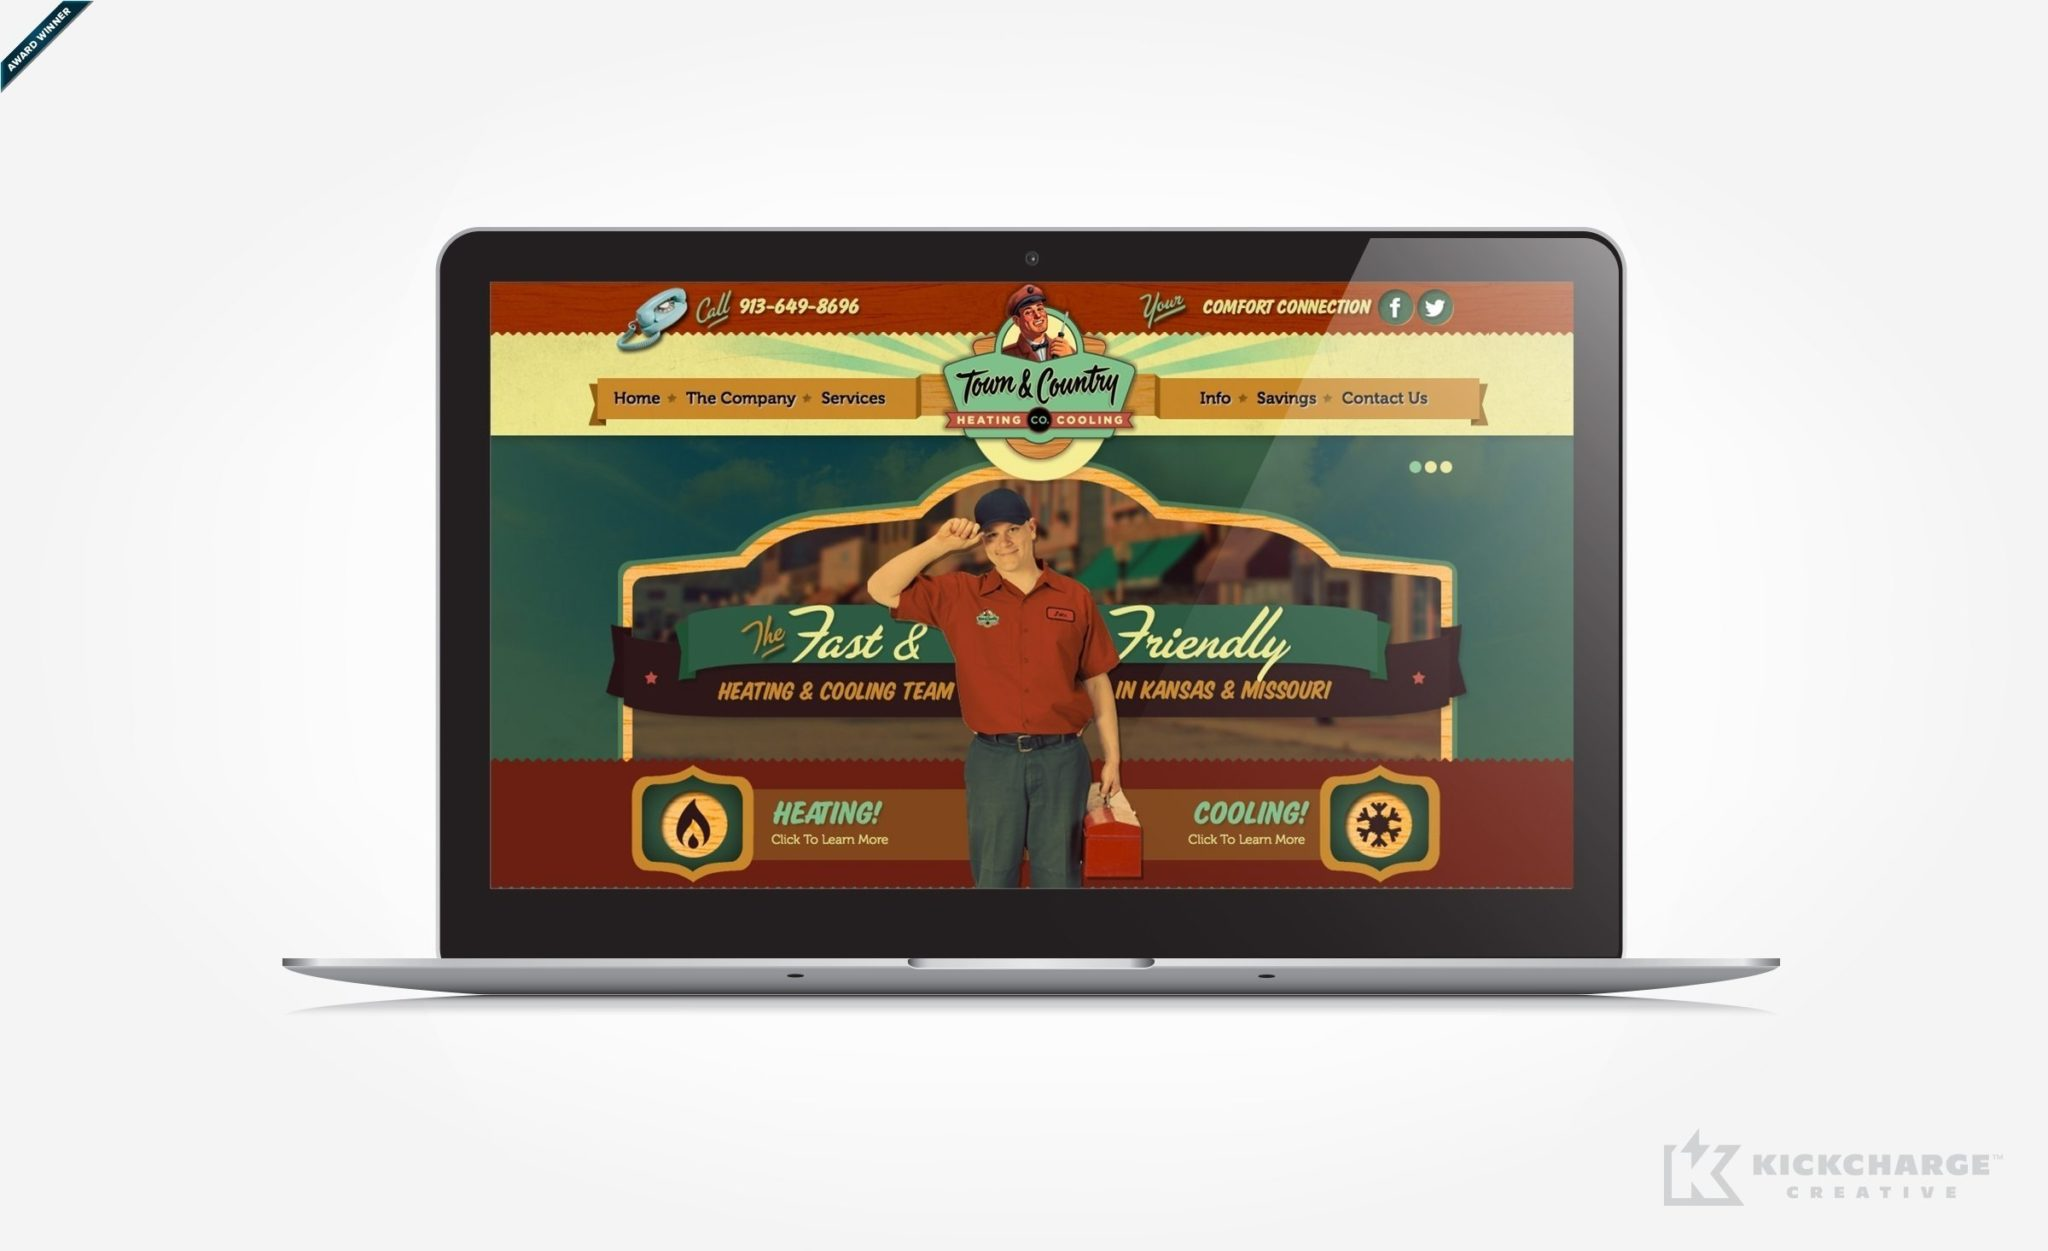 Web design for a heating and air conditioning contractor located in KS. Award winning design - Graphic Design USA 2014 American Web Design Awards.